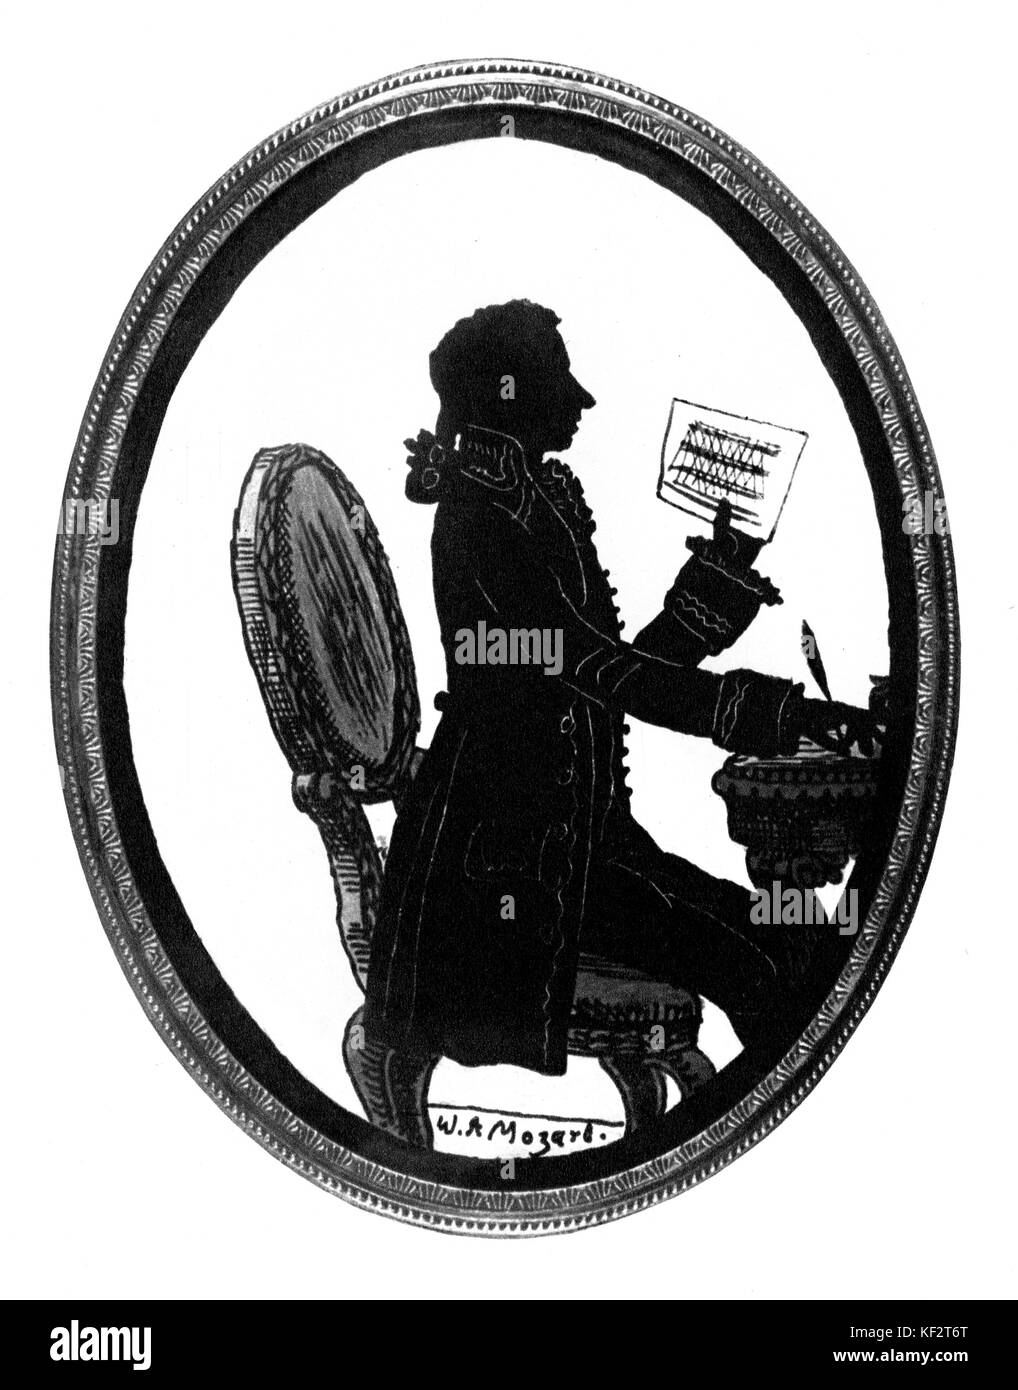 Mozart completing Don Giovanni . Silhouette made to commemorate the premiere of Don Giovanni opera (1787), thought - Stock Image